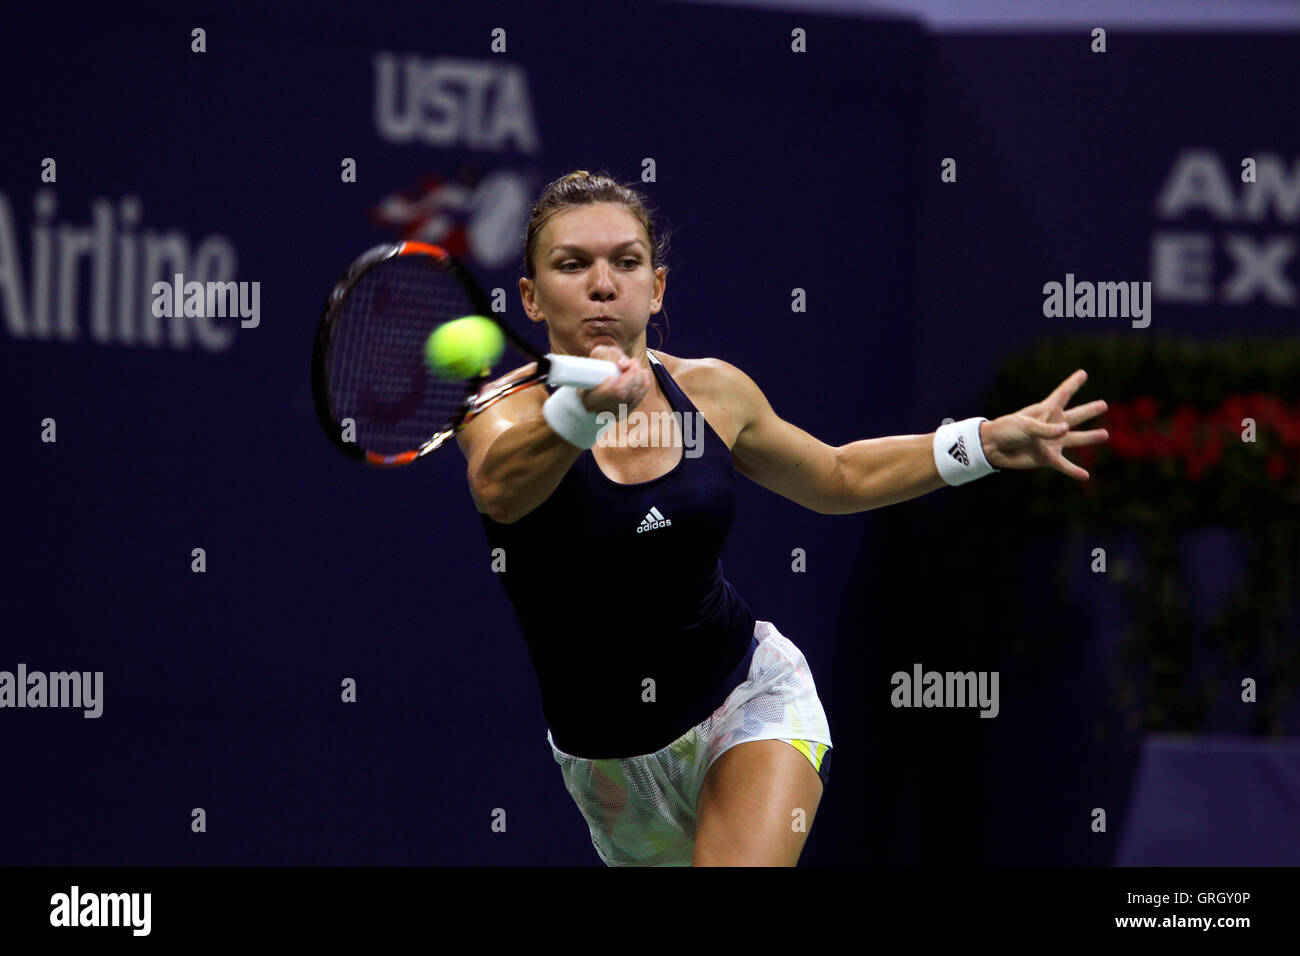 Flushing Meadows, New York, USA. 7th September, 2016. Simona Halep of Romania during her quarter final match against - Stock Image